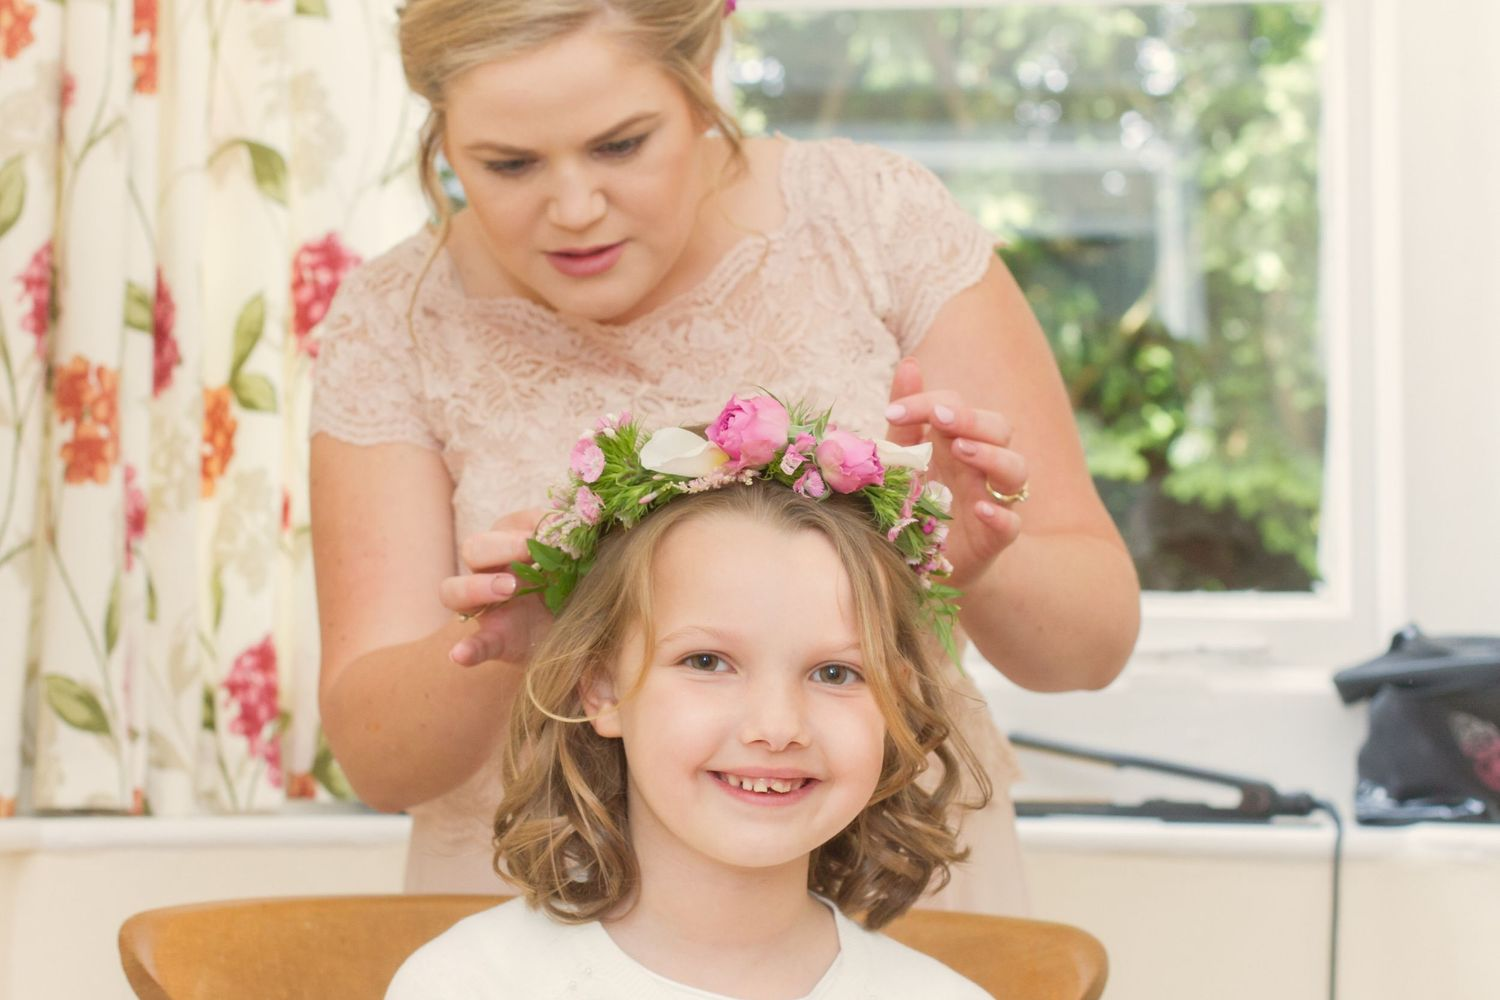 Flowergirl getting ready